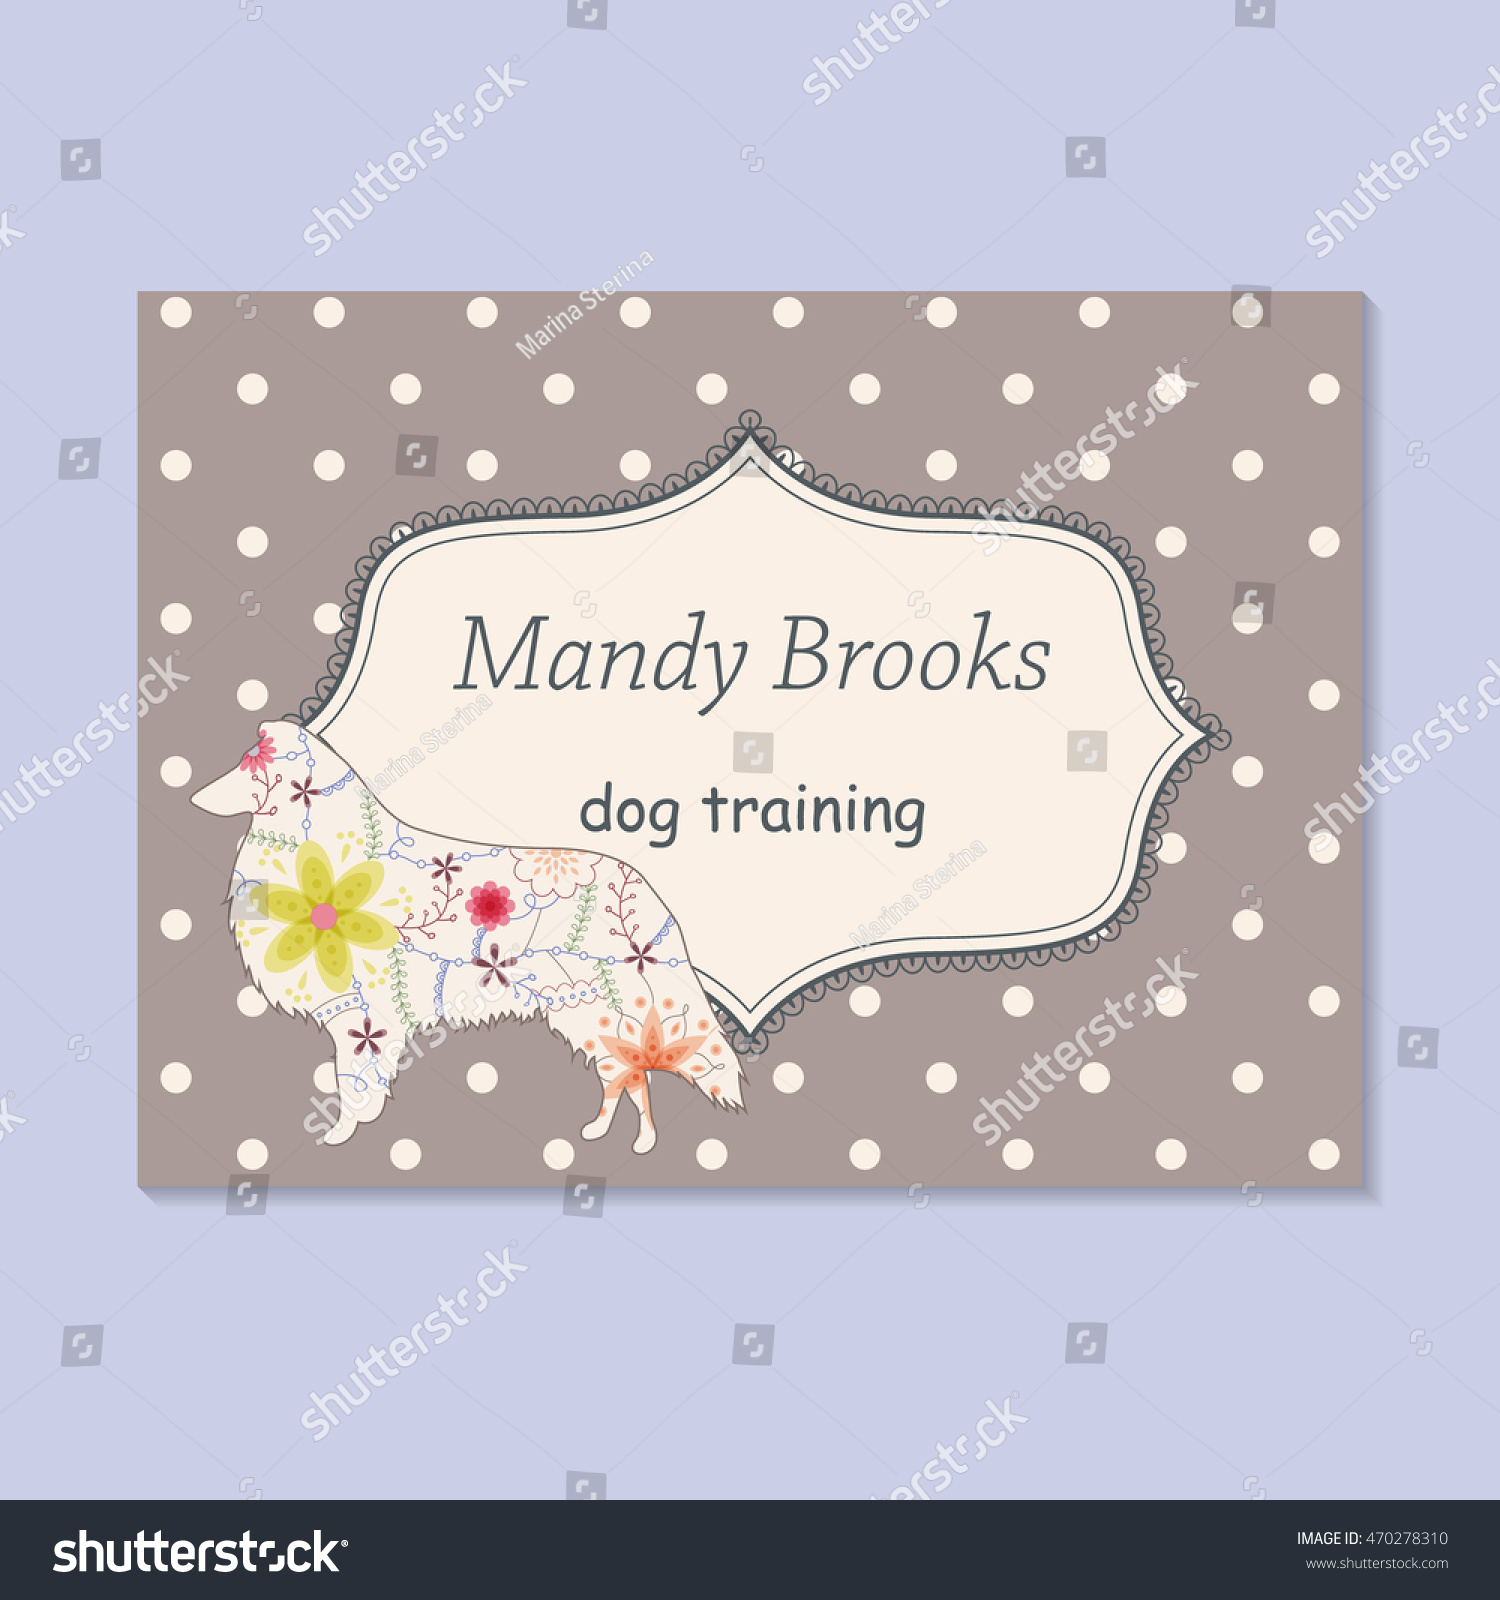 vector vintage business card dog training stock vector